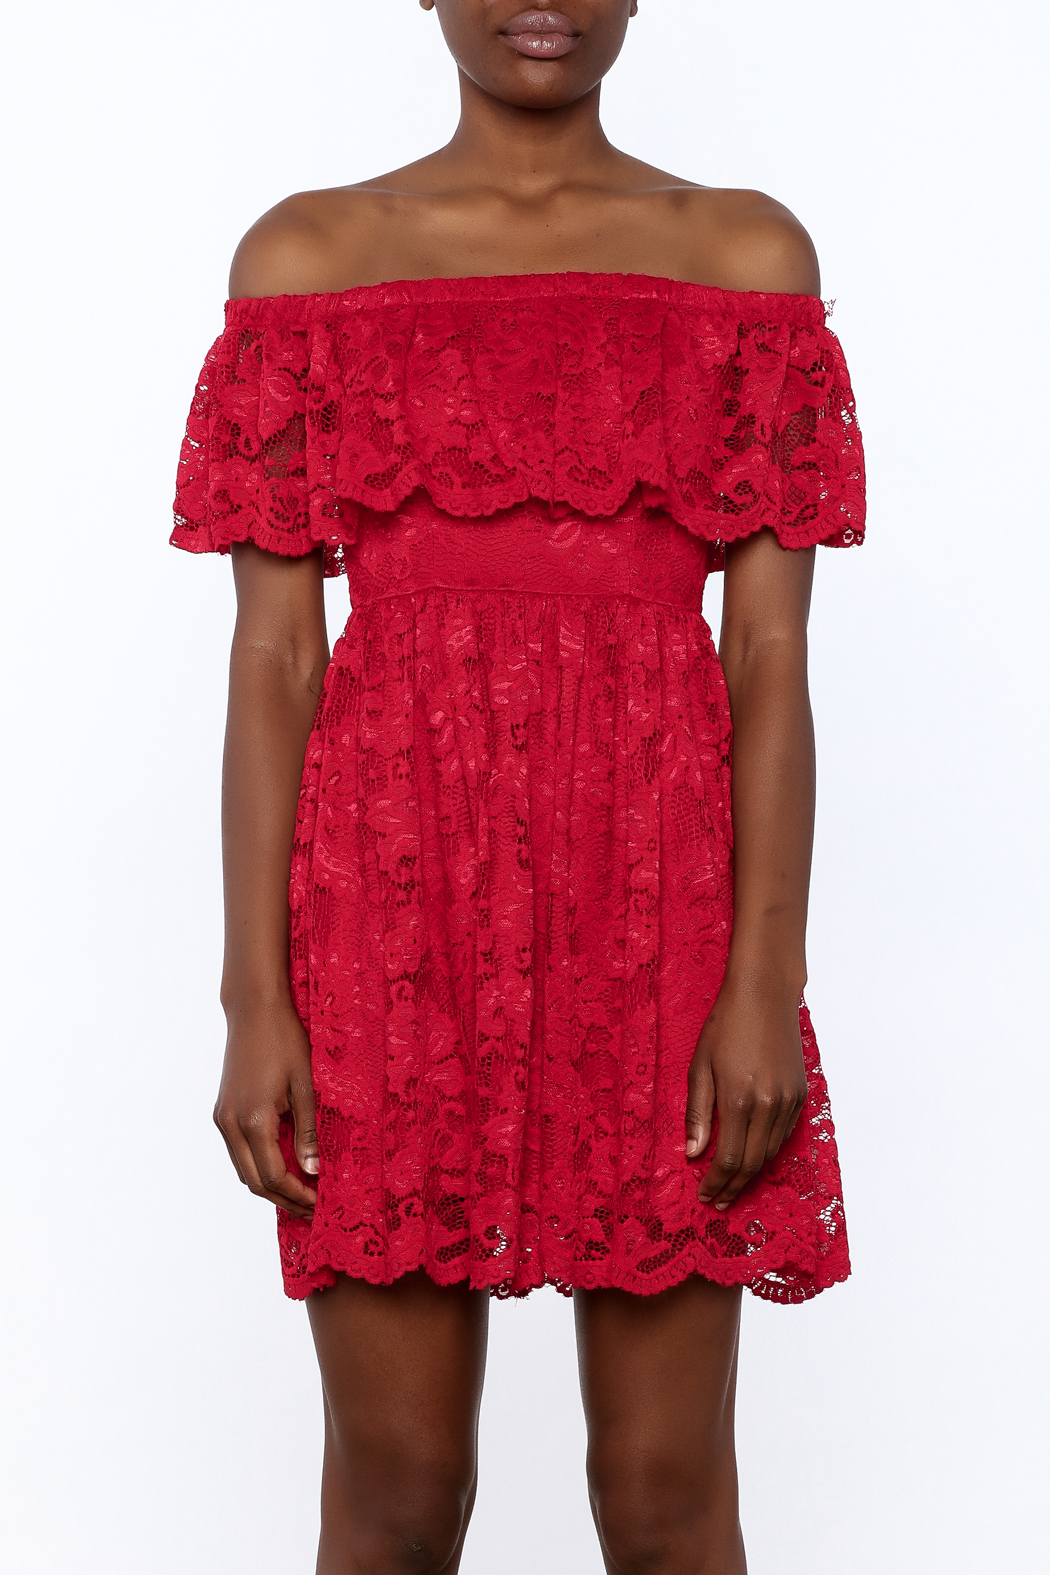 1 Funky Red Lace Dress - Side Cropped Image